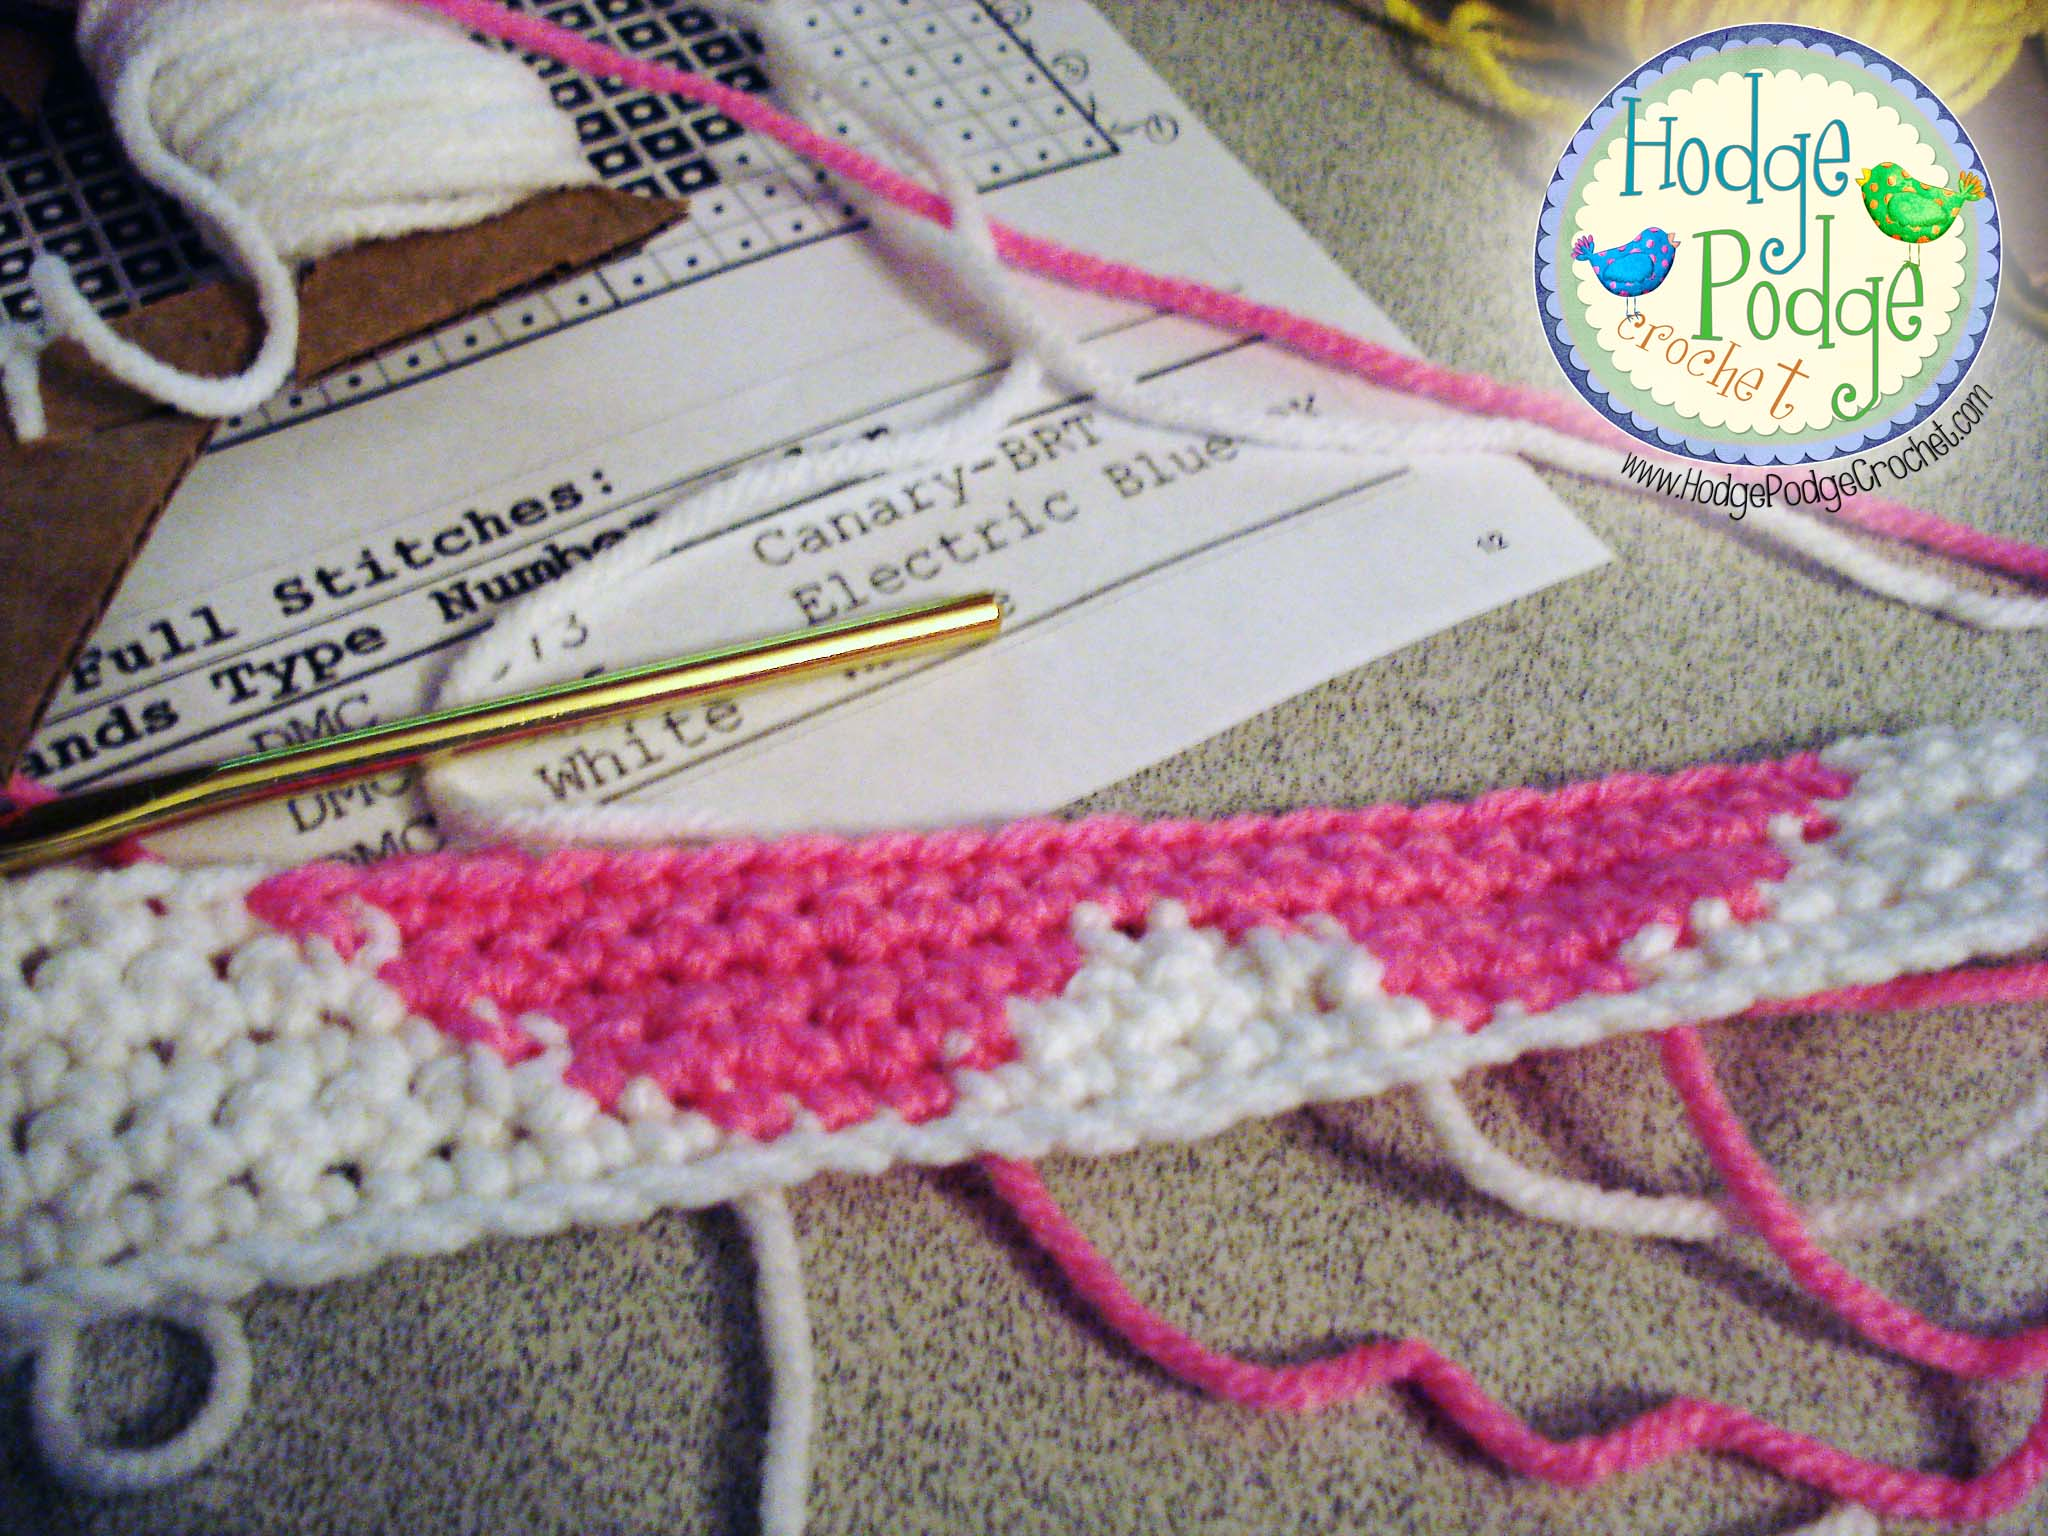 Crocheting Made Easy : Tapestry Crochet Made Easy HodgePodge Crochet